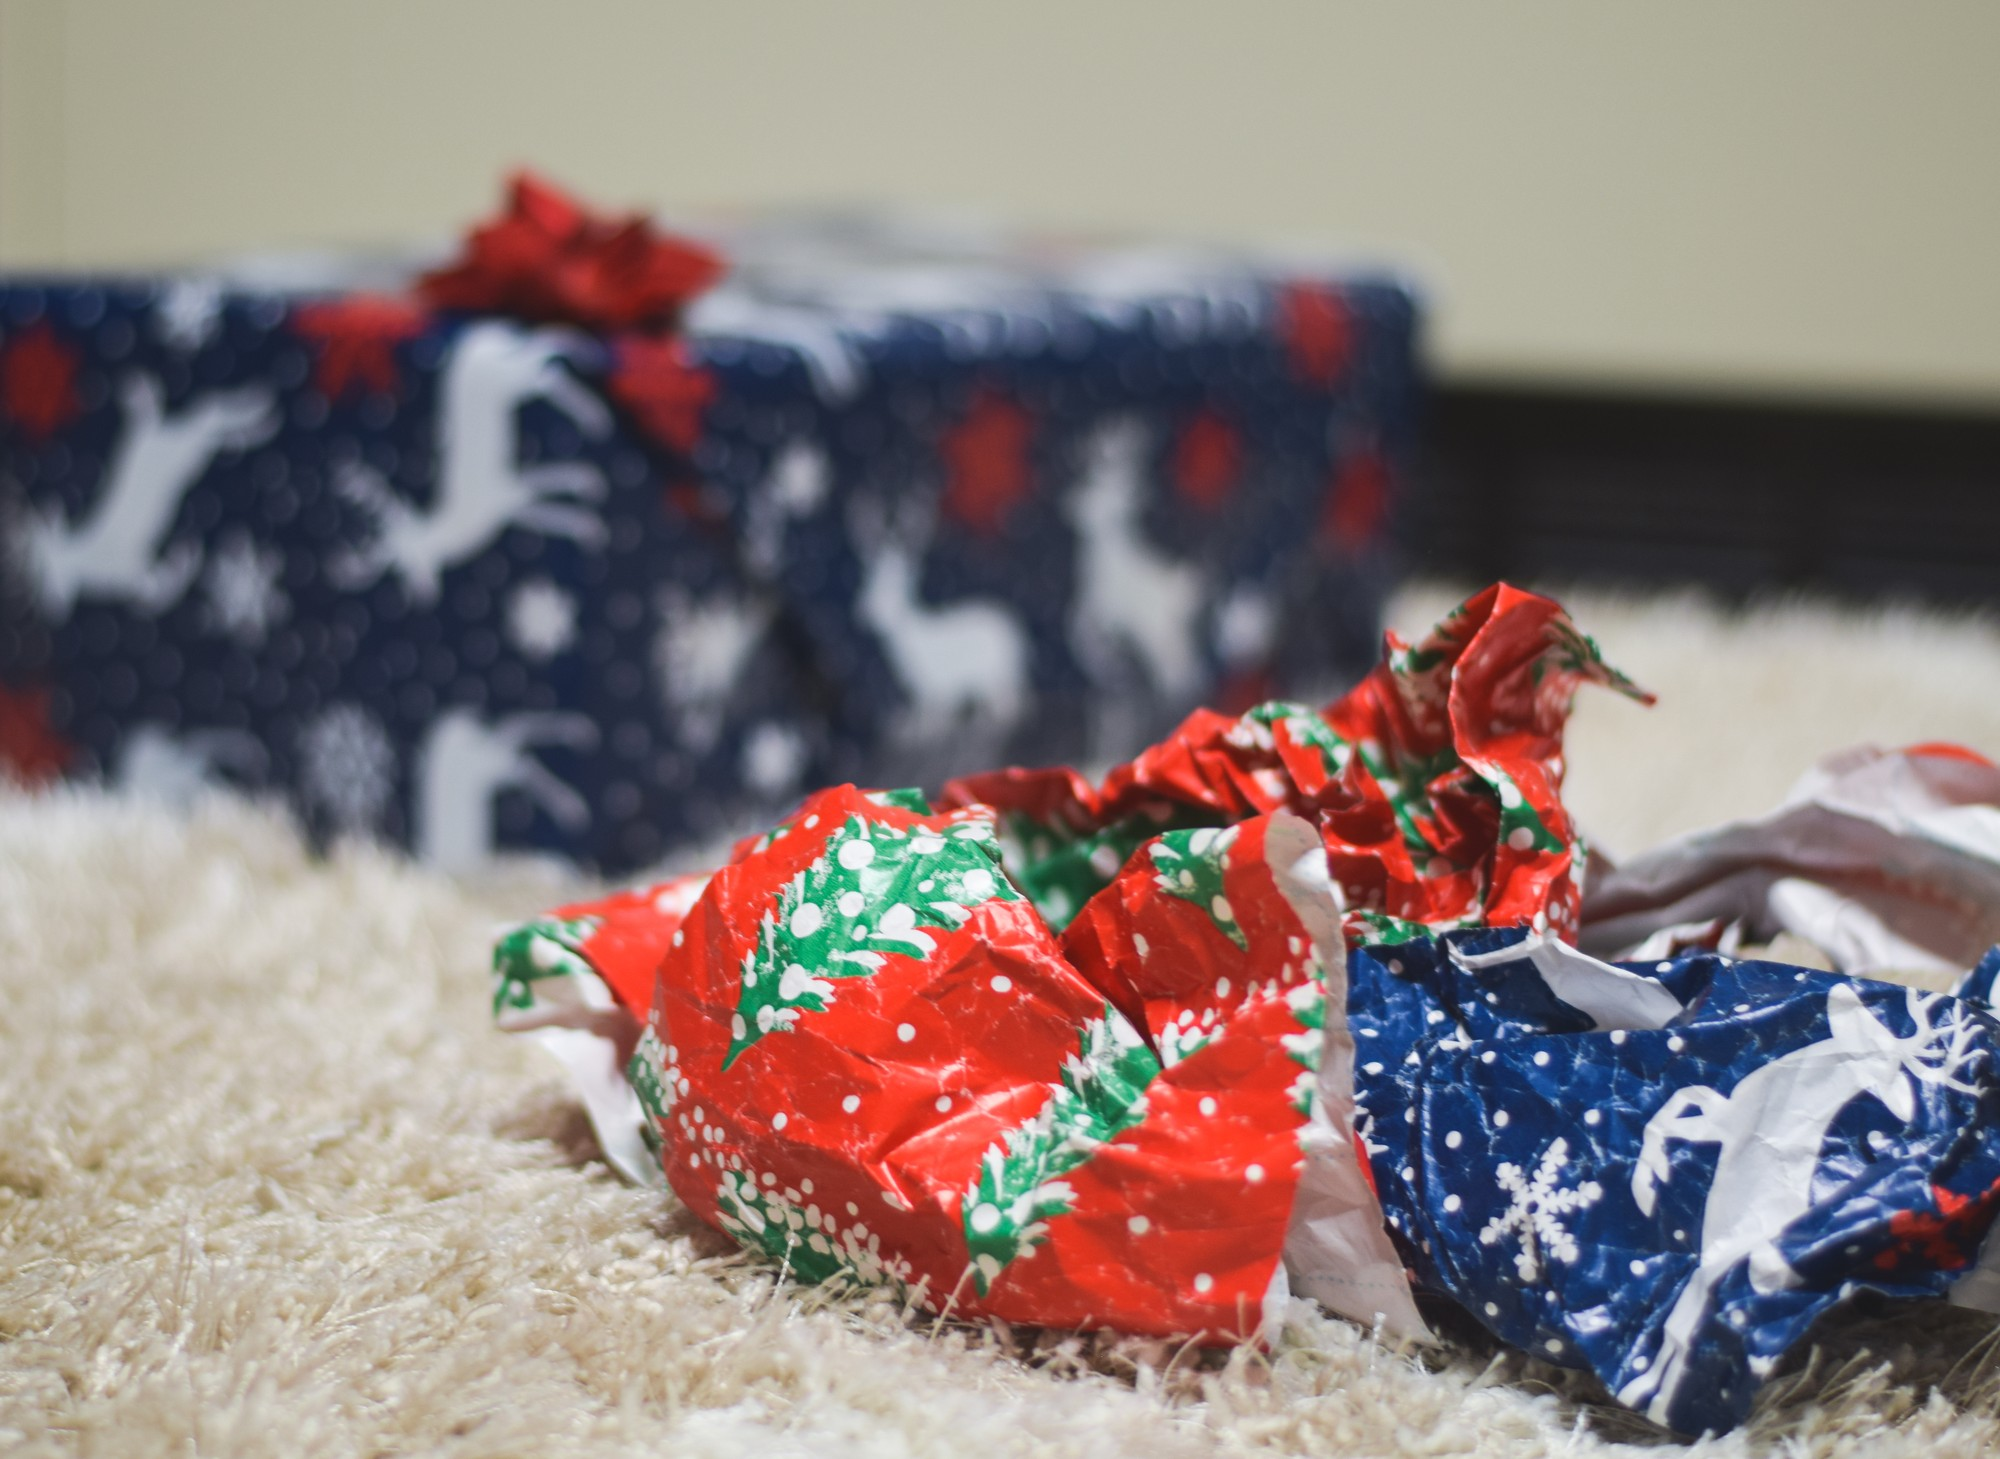 The most wasteful time of the year': How to reduce waste